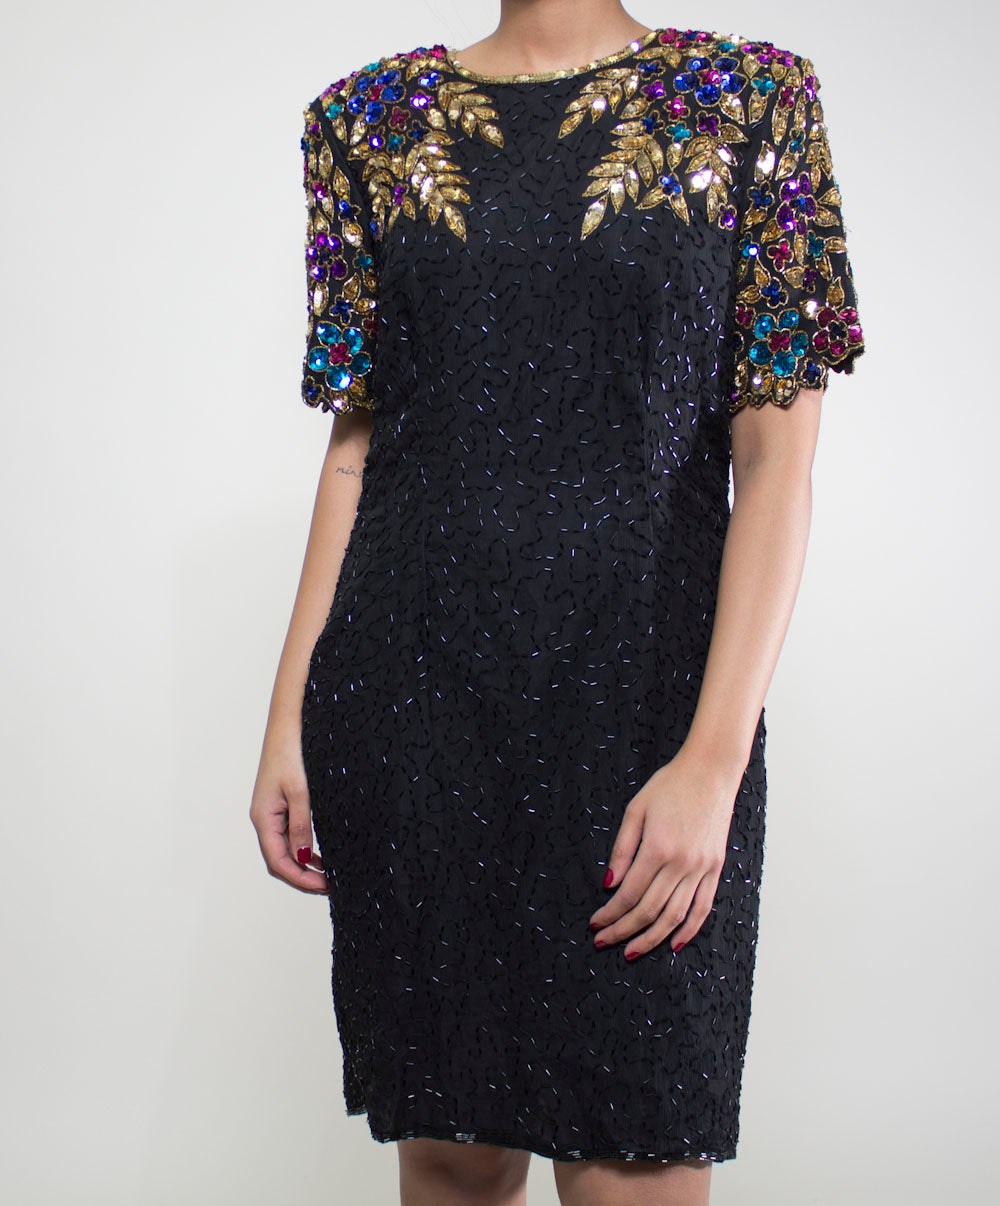 Aphrodite Sequin Dress